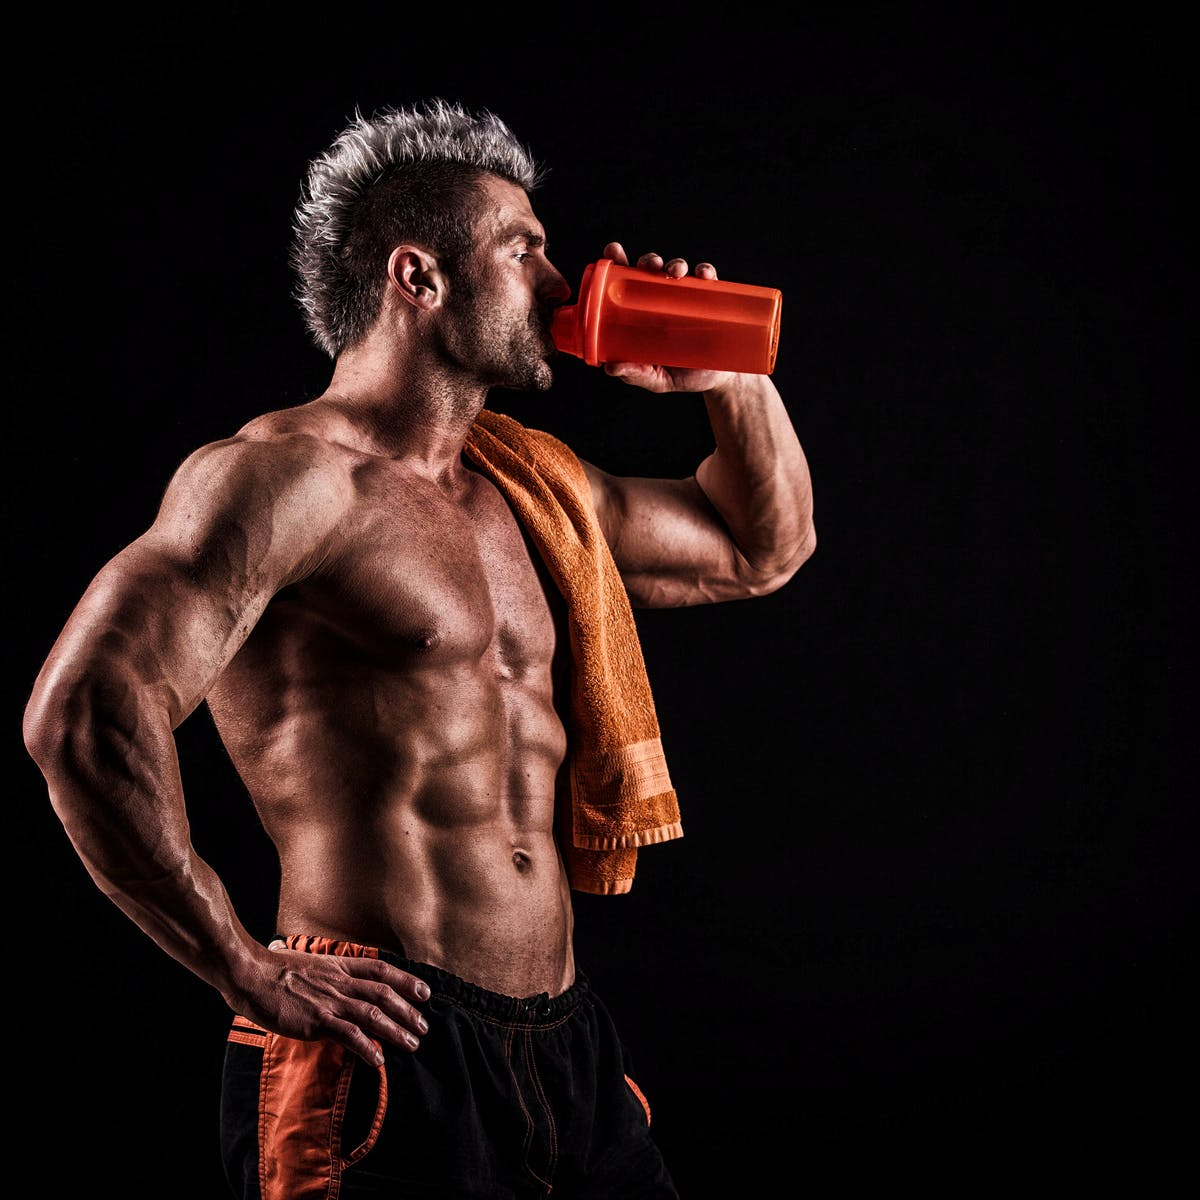 Gym Workout Advice Protein Guidance Looks Wrong Our Findings Suggest